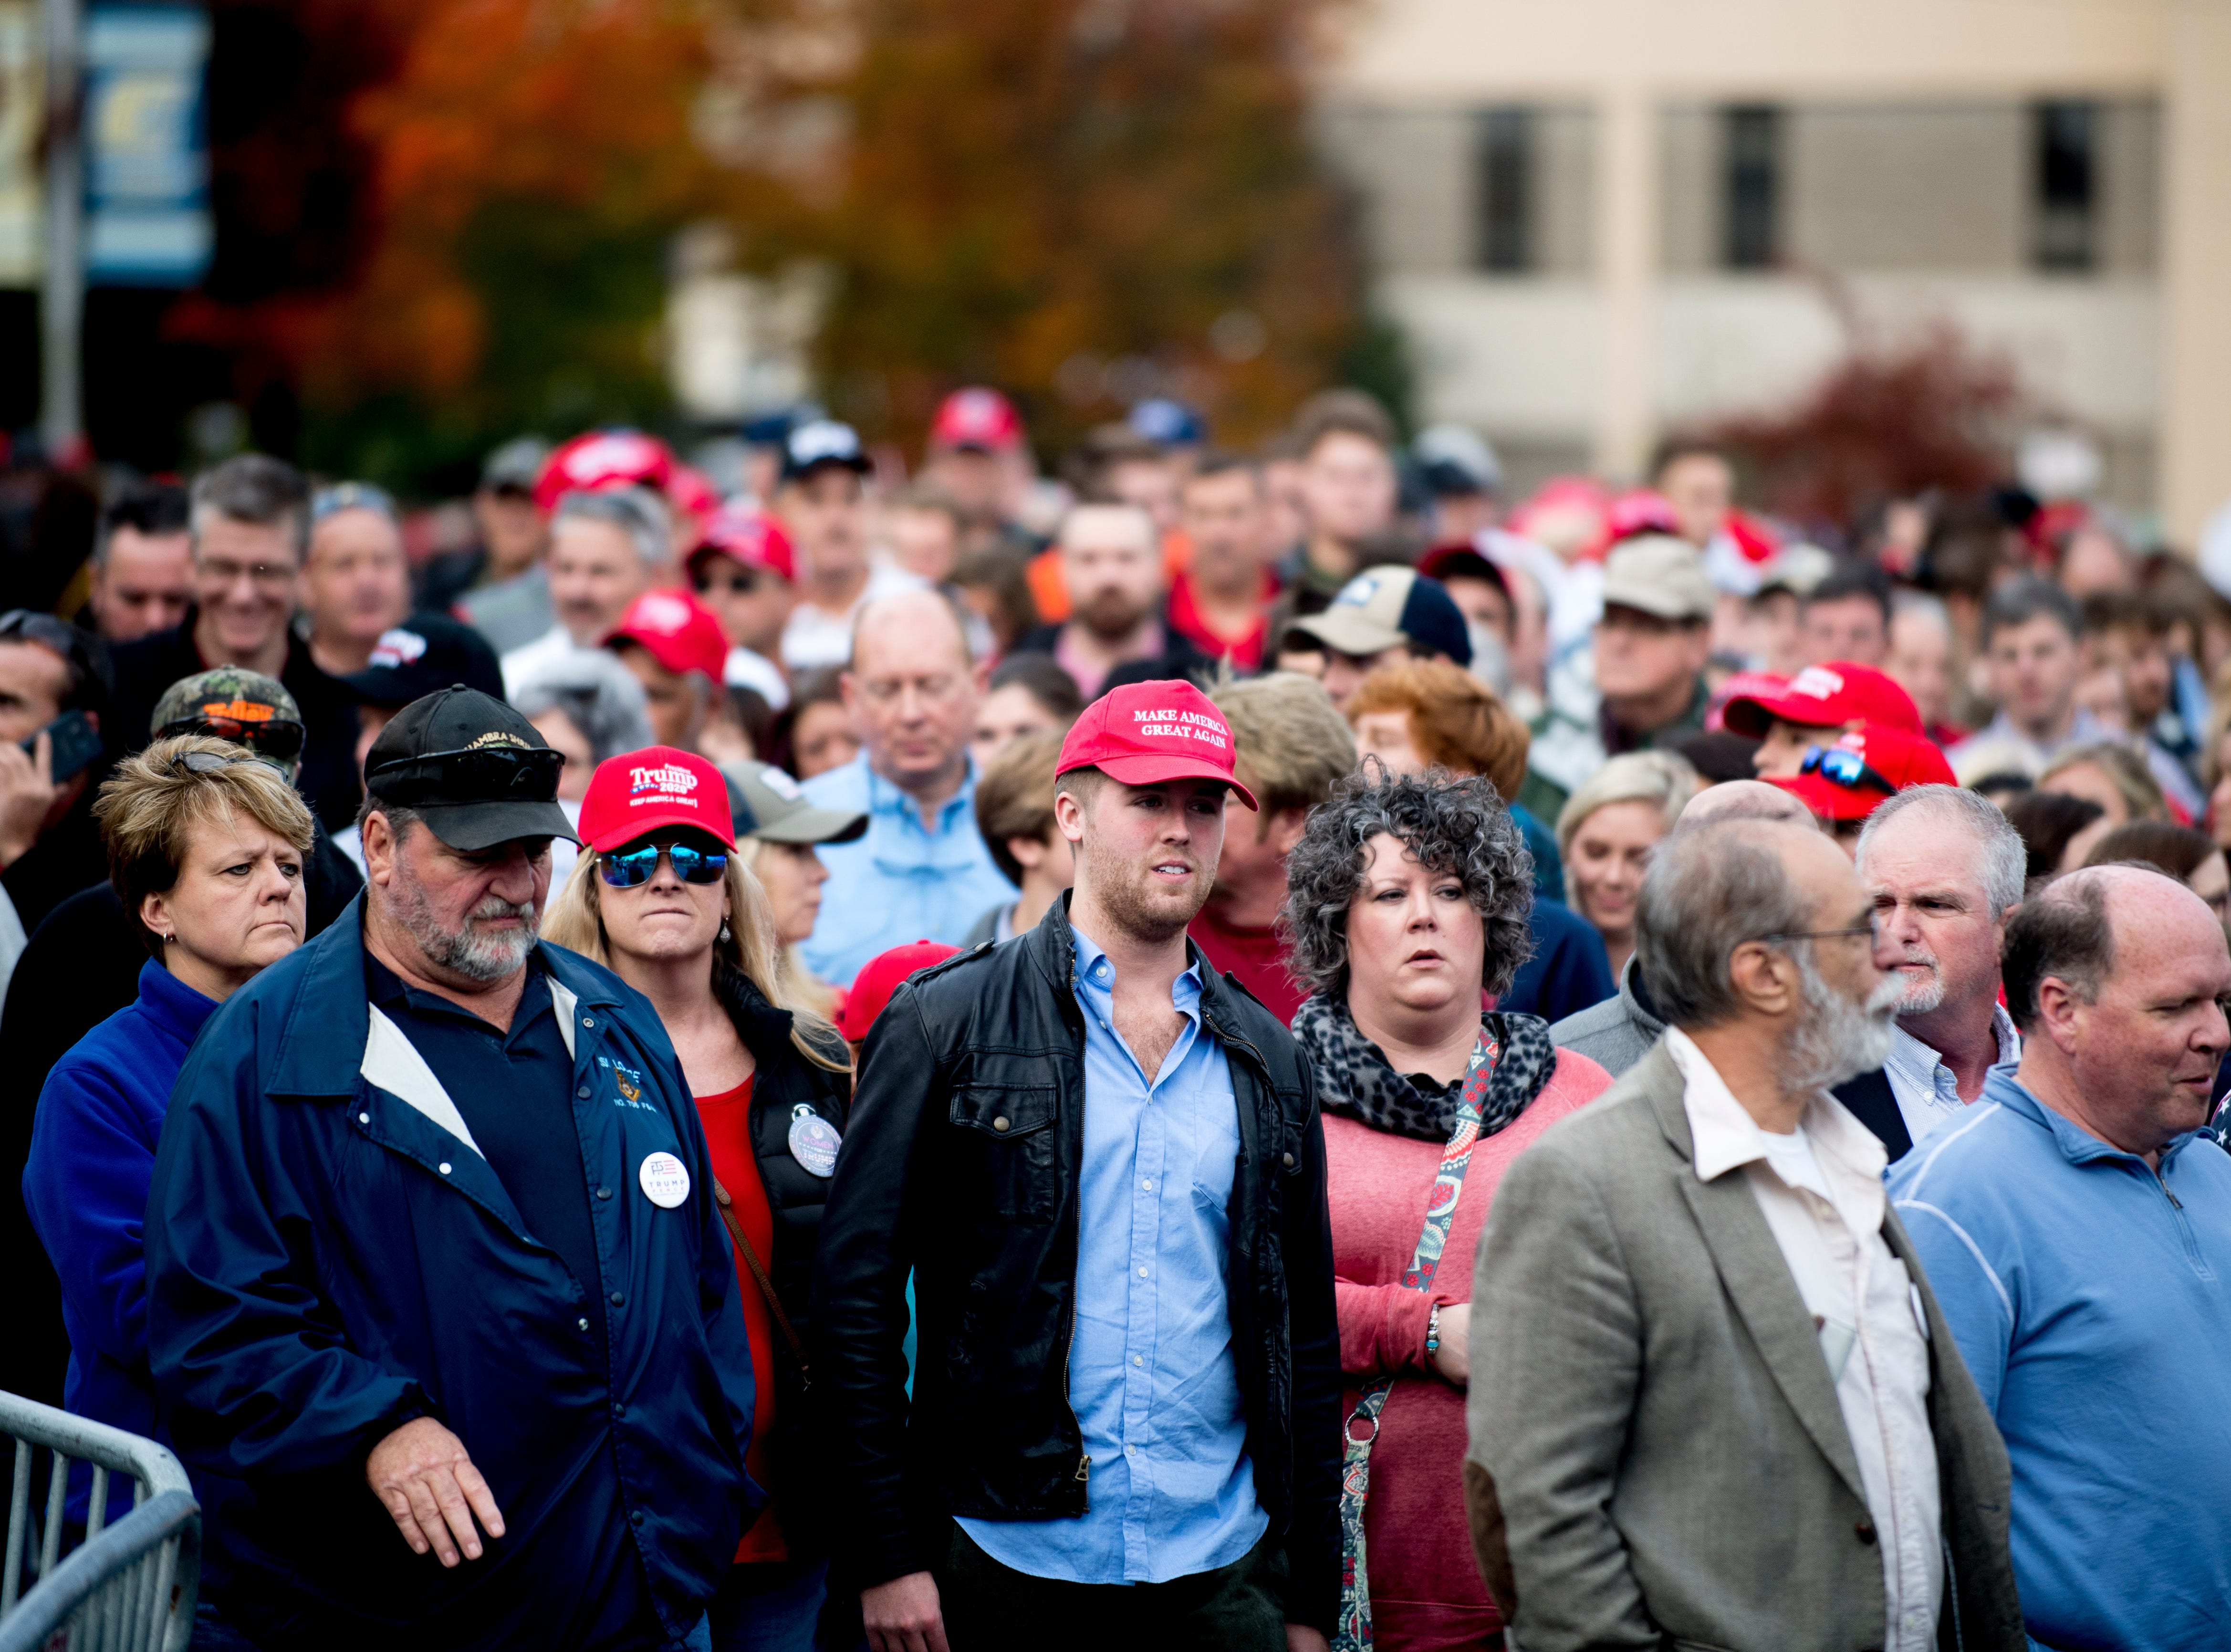 """Trump supporters wait in line ahead of President Donald J. Trump's """"Make America Great Again"""" Rally at McKenzie Arena in Chattanooga, Tennessee on Sunday, November 4, 2018."""